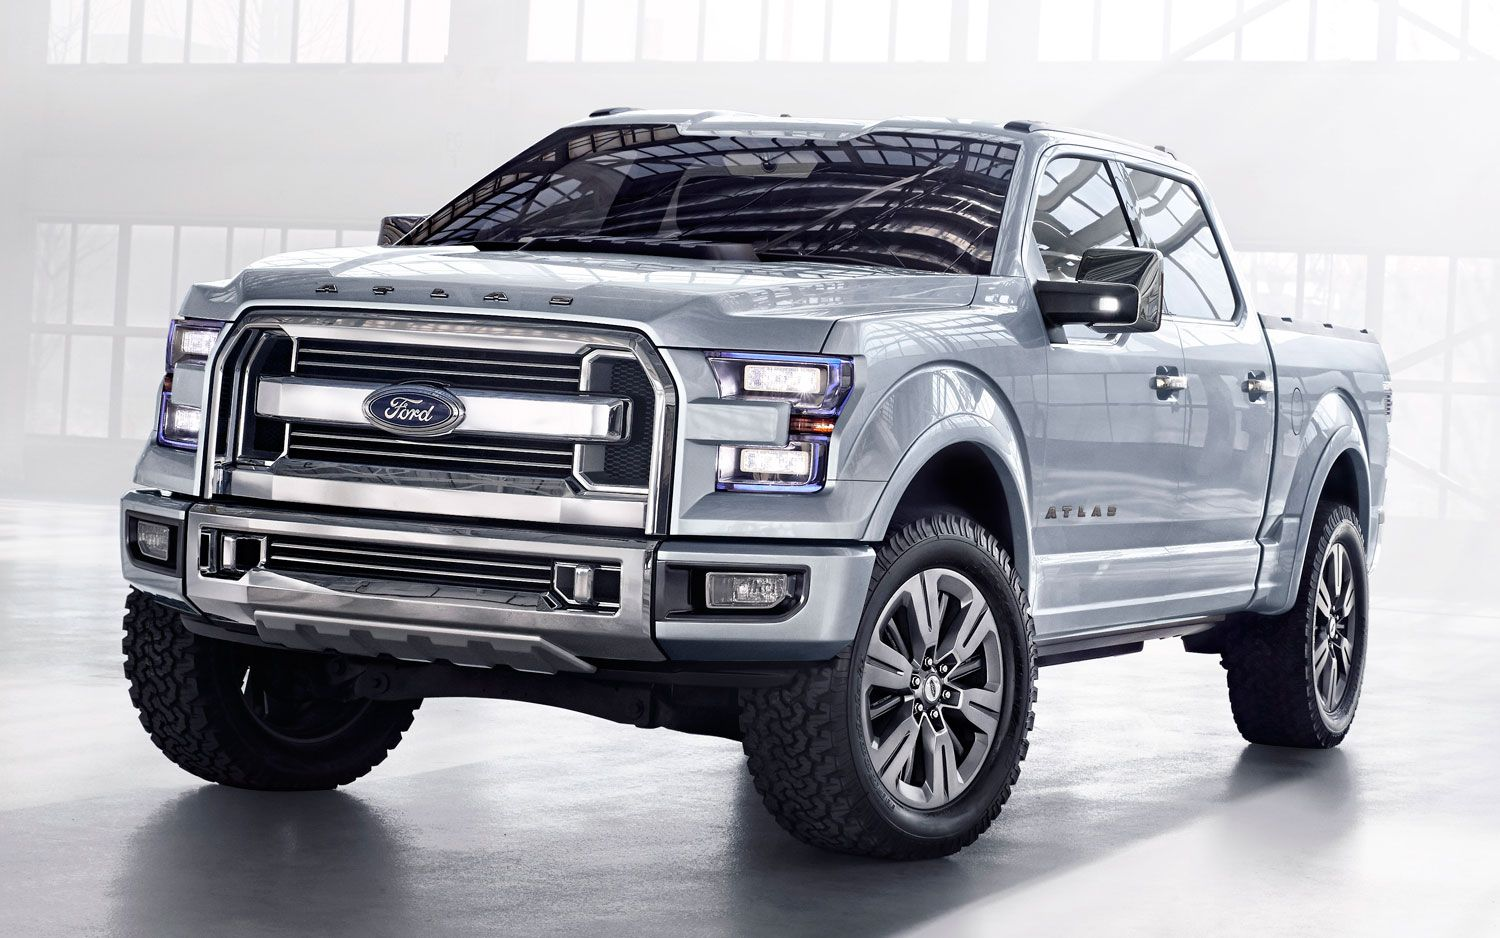 2015 ford f150 hd background ford pinterest 2015 ford f150 2015 ford f150 hd background voltagebd Choice Image